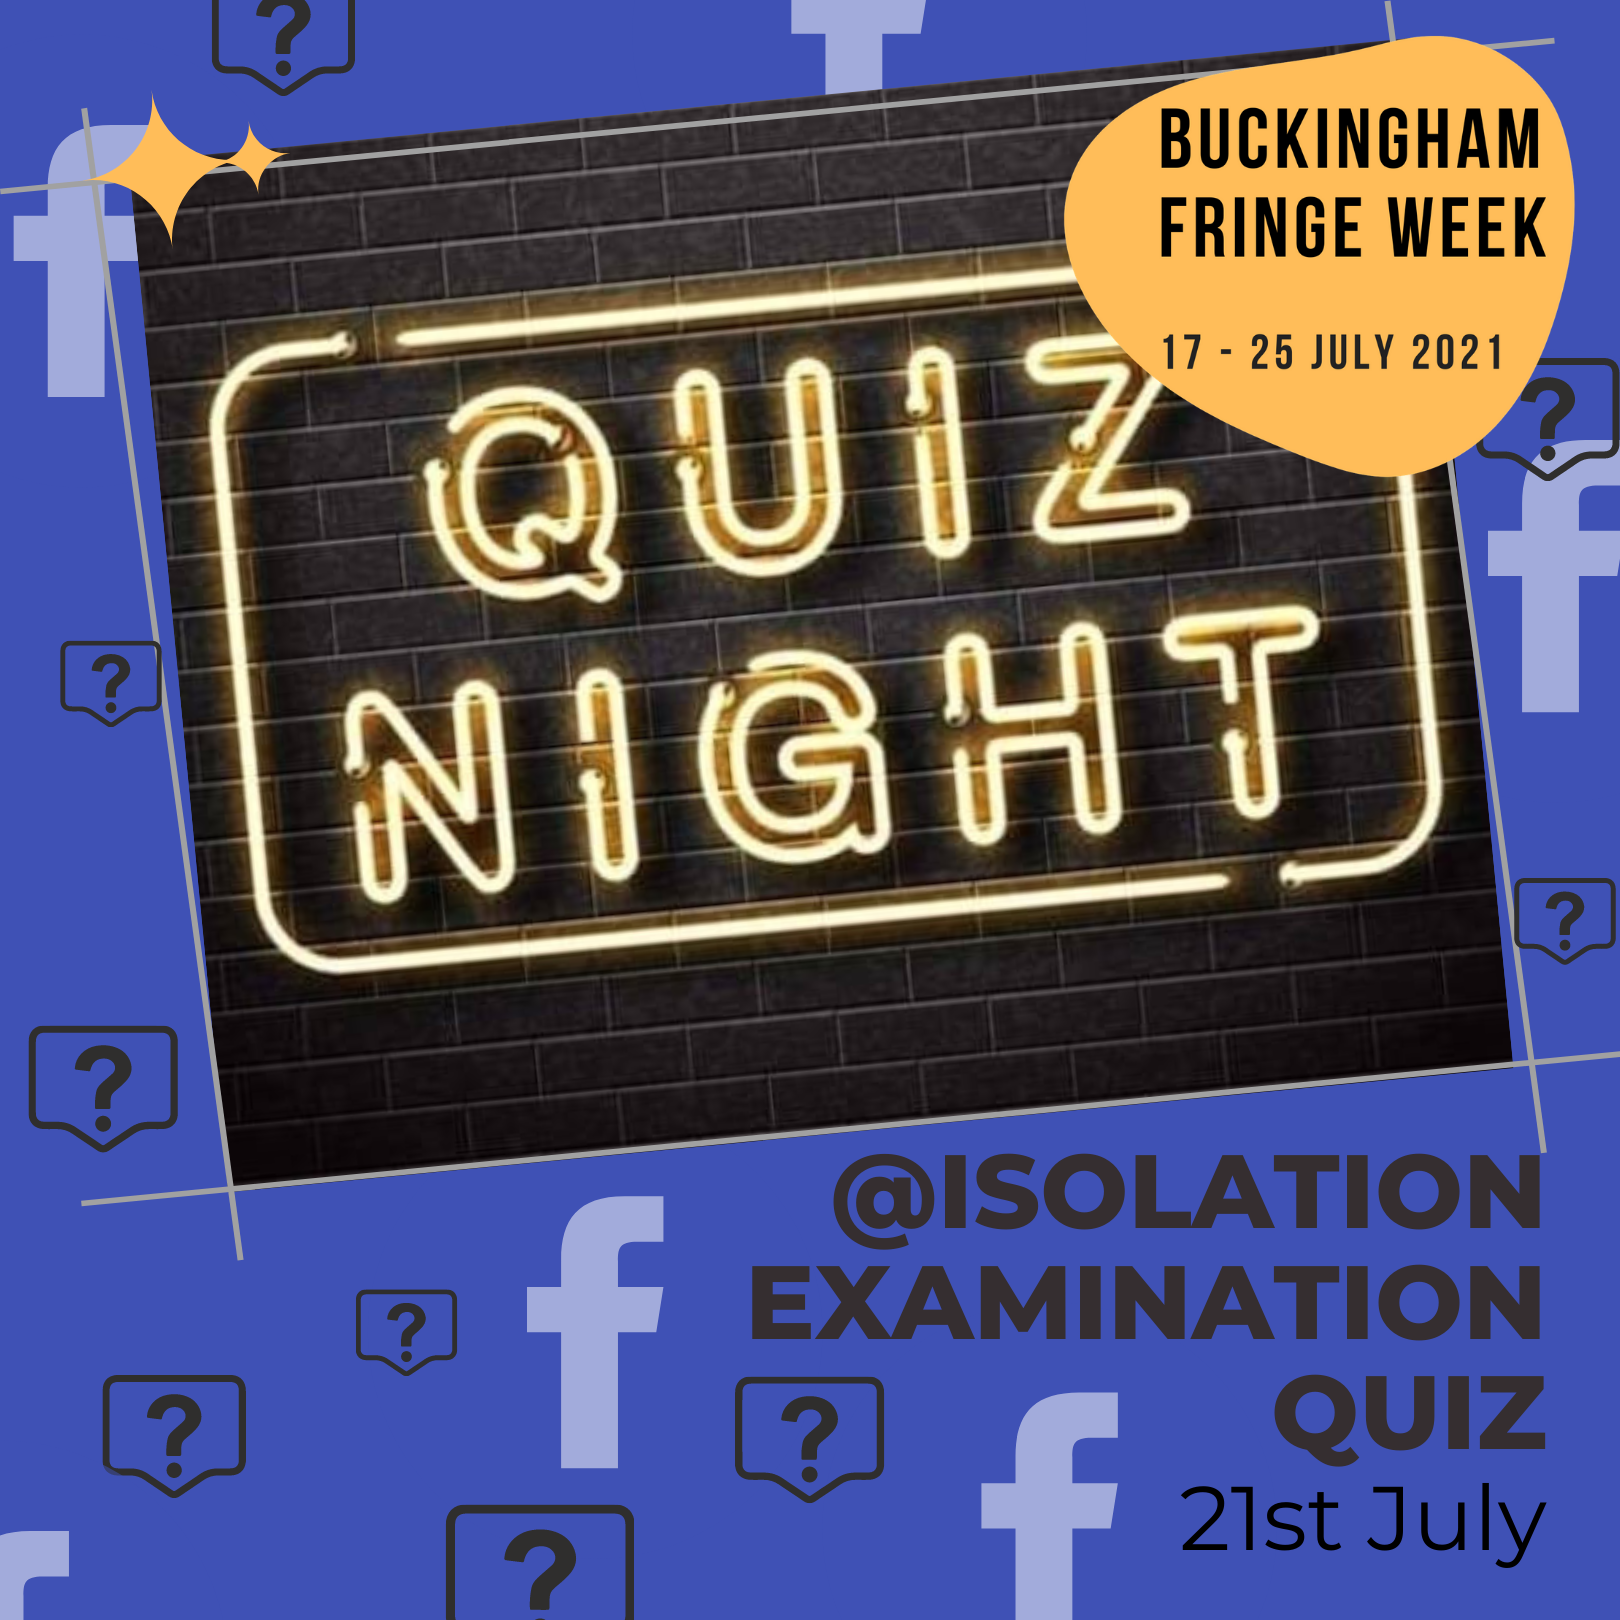 Click here to find out more about Isolation Examination Quiz